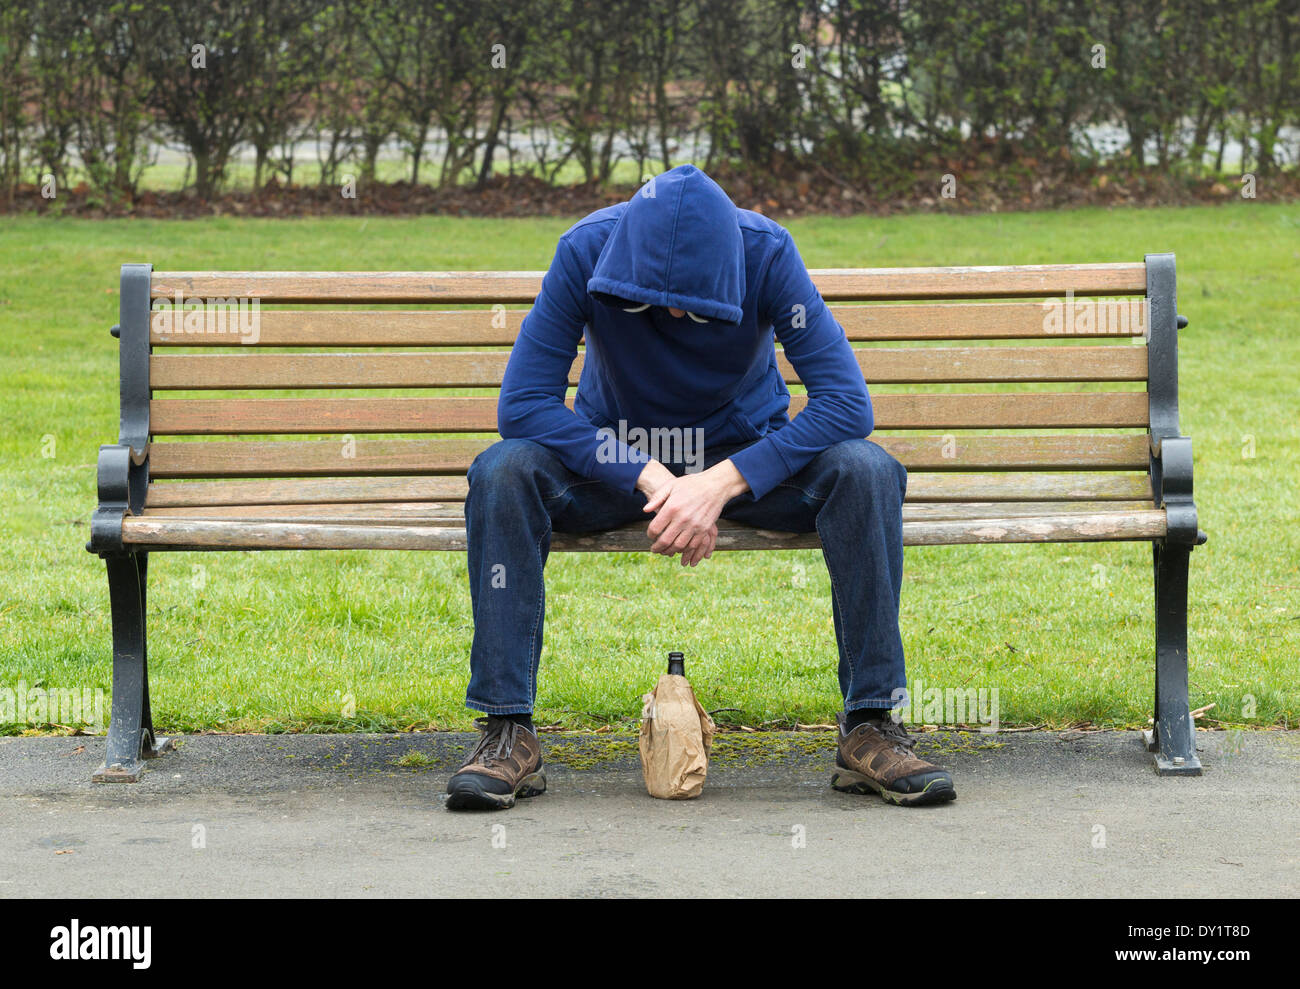 Male wearing hoodie sitting on park bench drinking alcohol - Stock Image